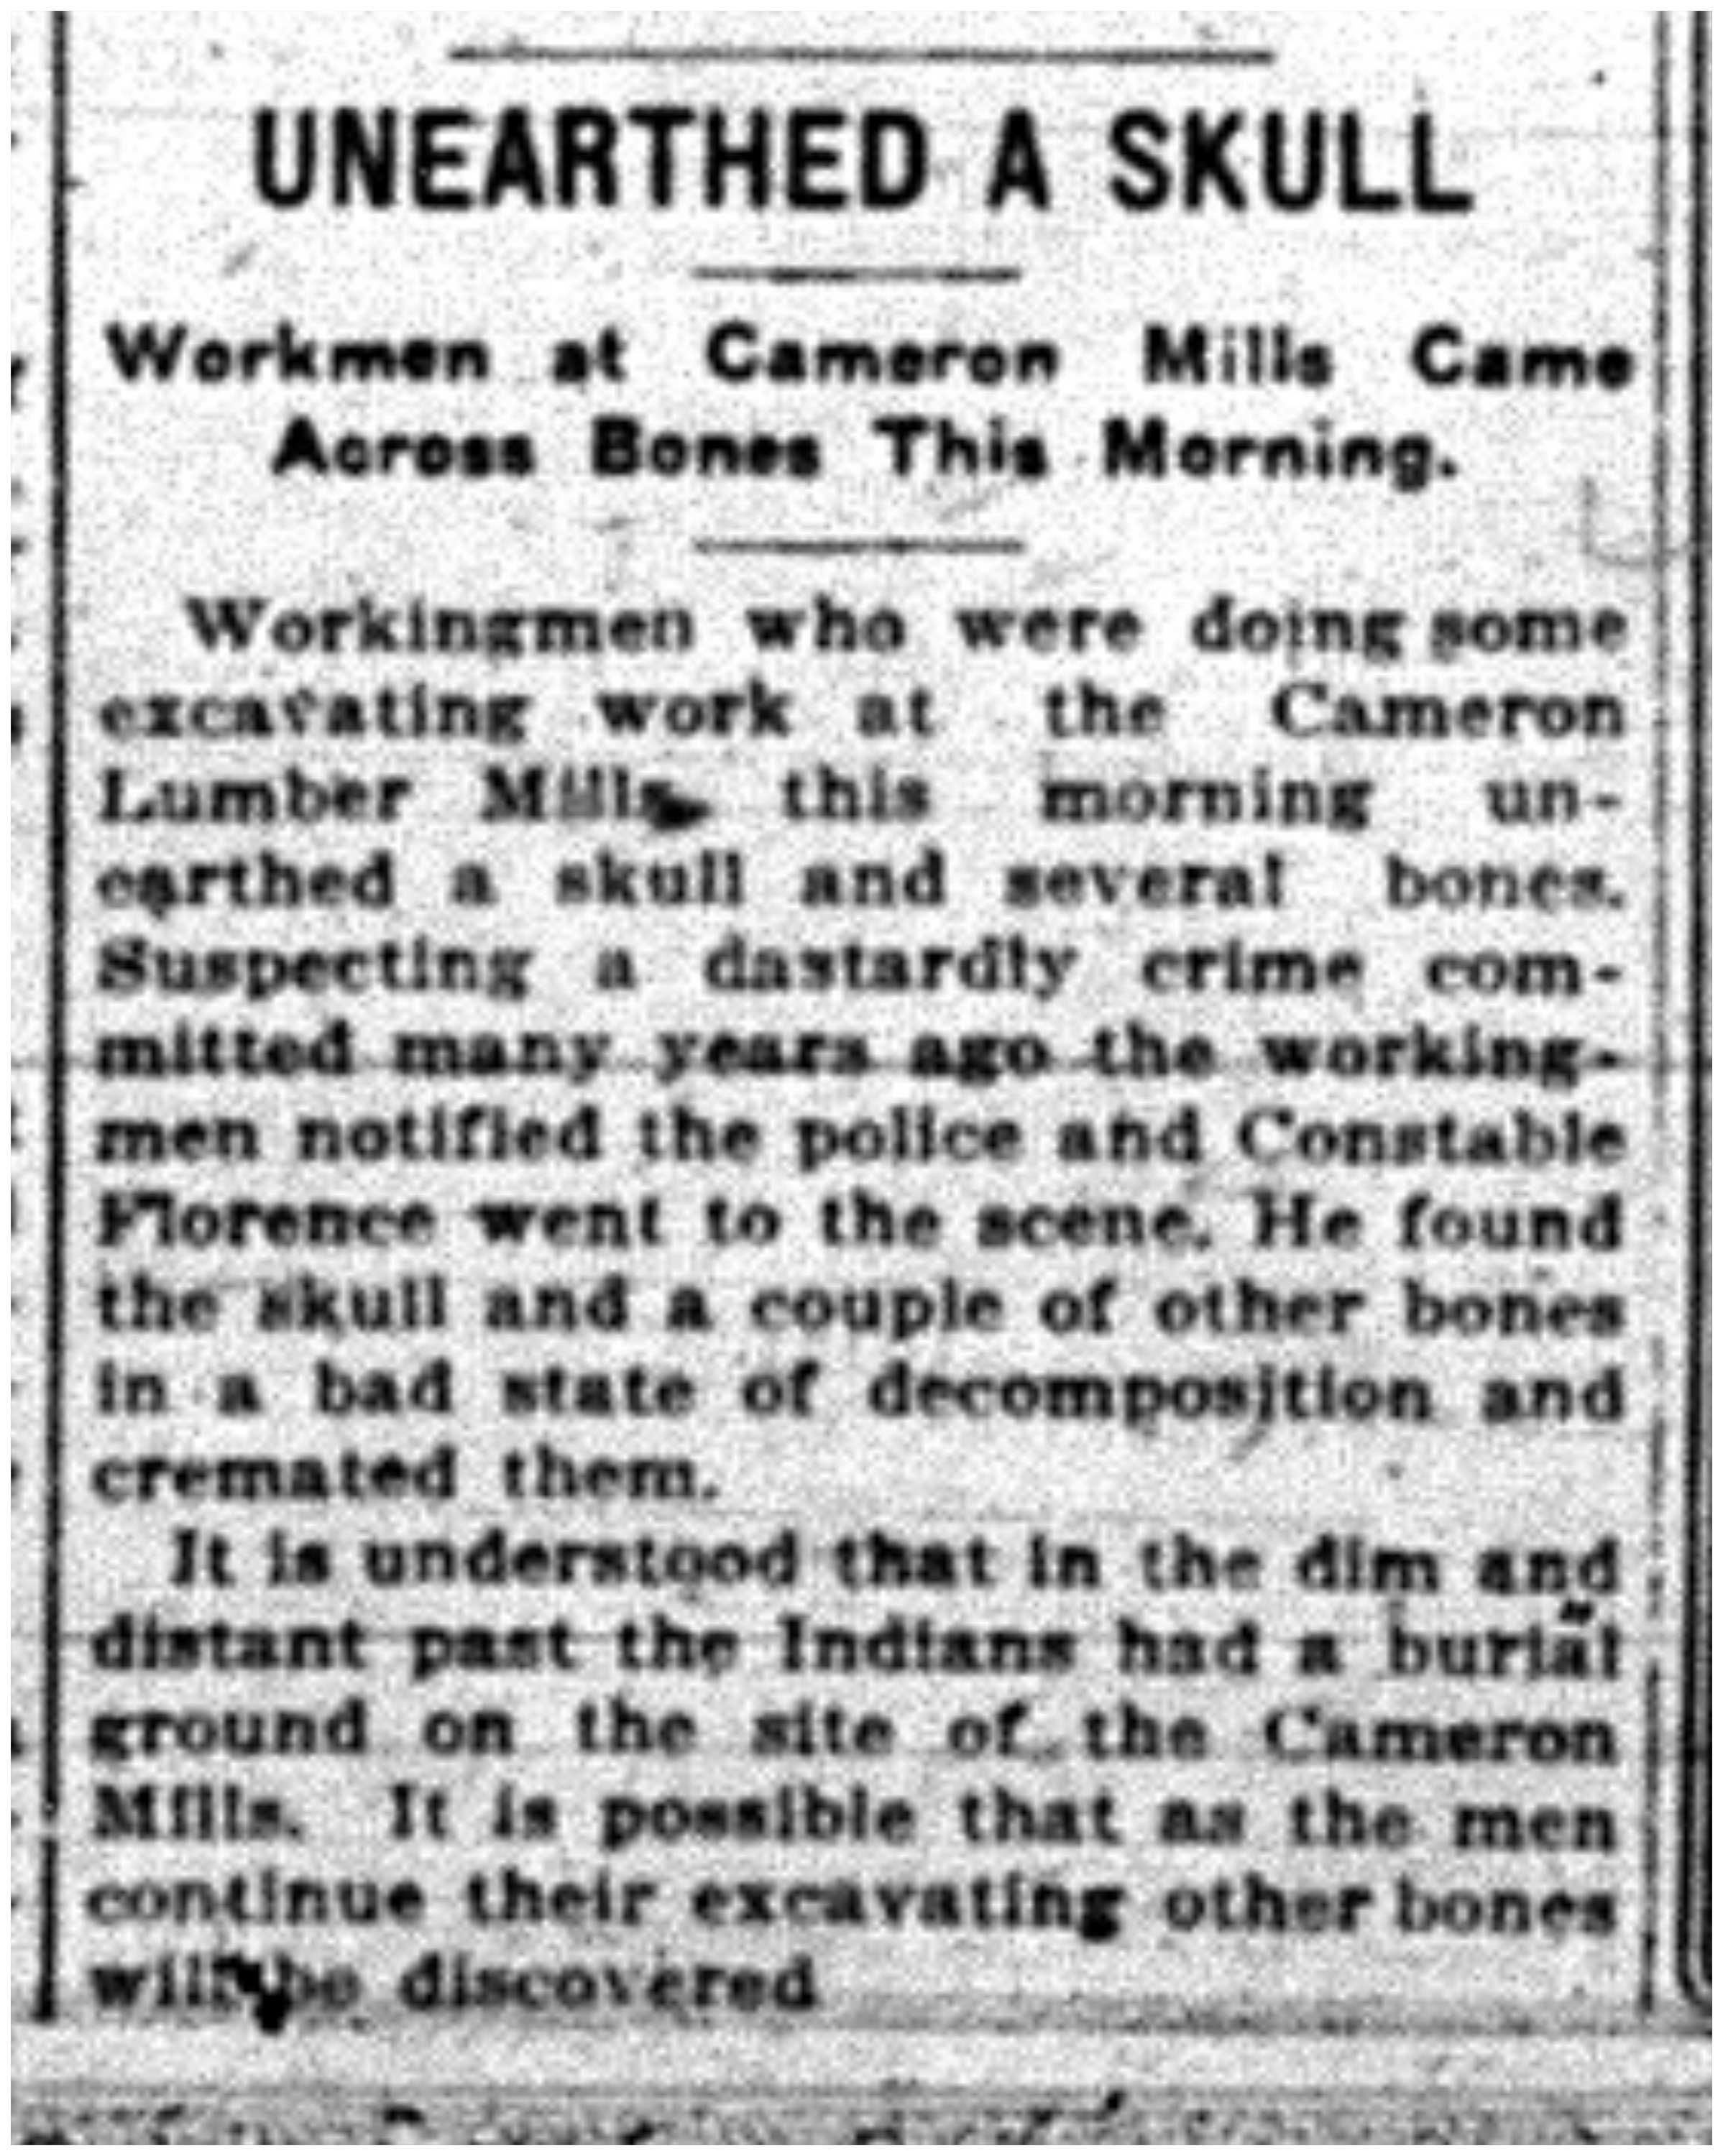 """Unearthed A Skull: Workmen at Cameron Mills Came Across Bones This Morning"""